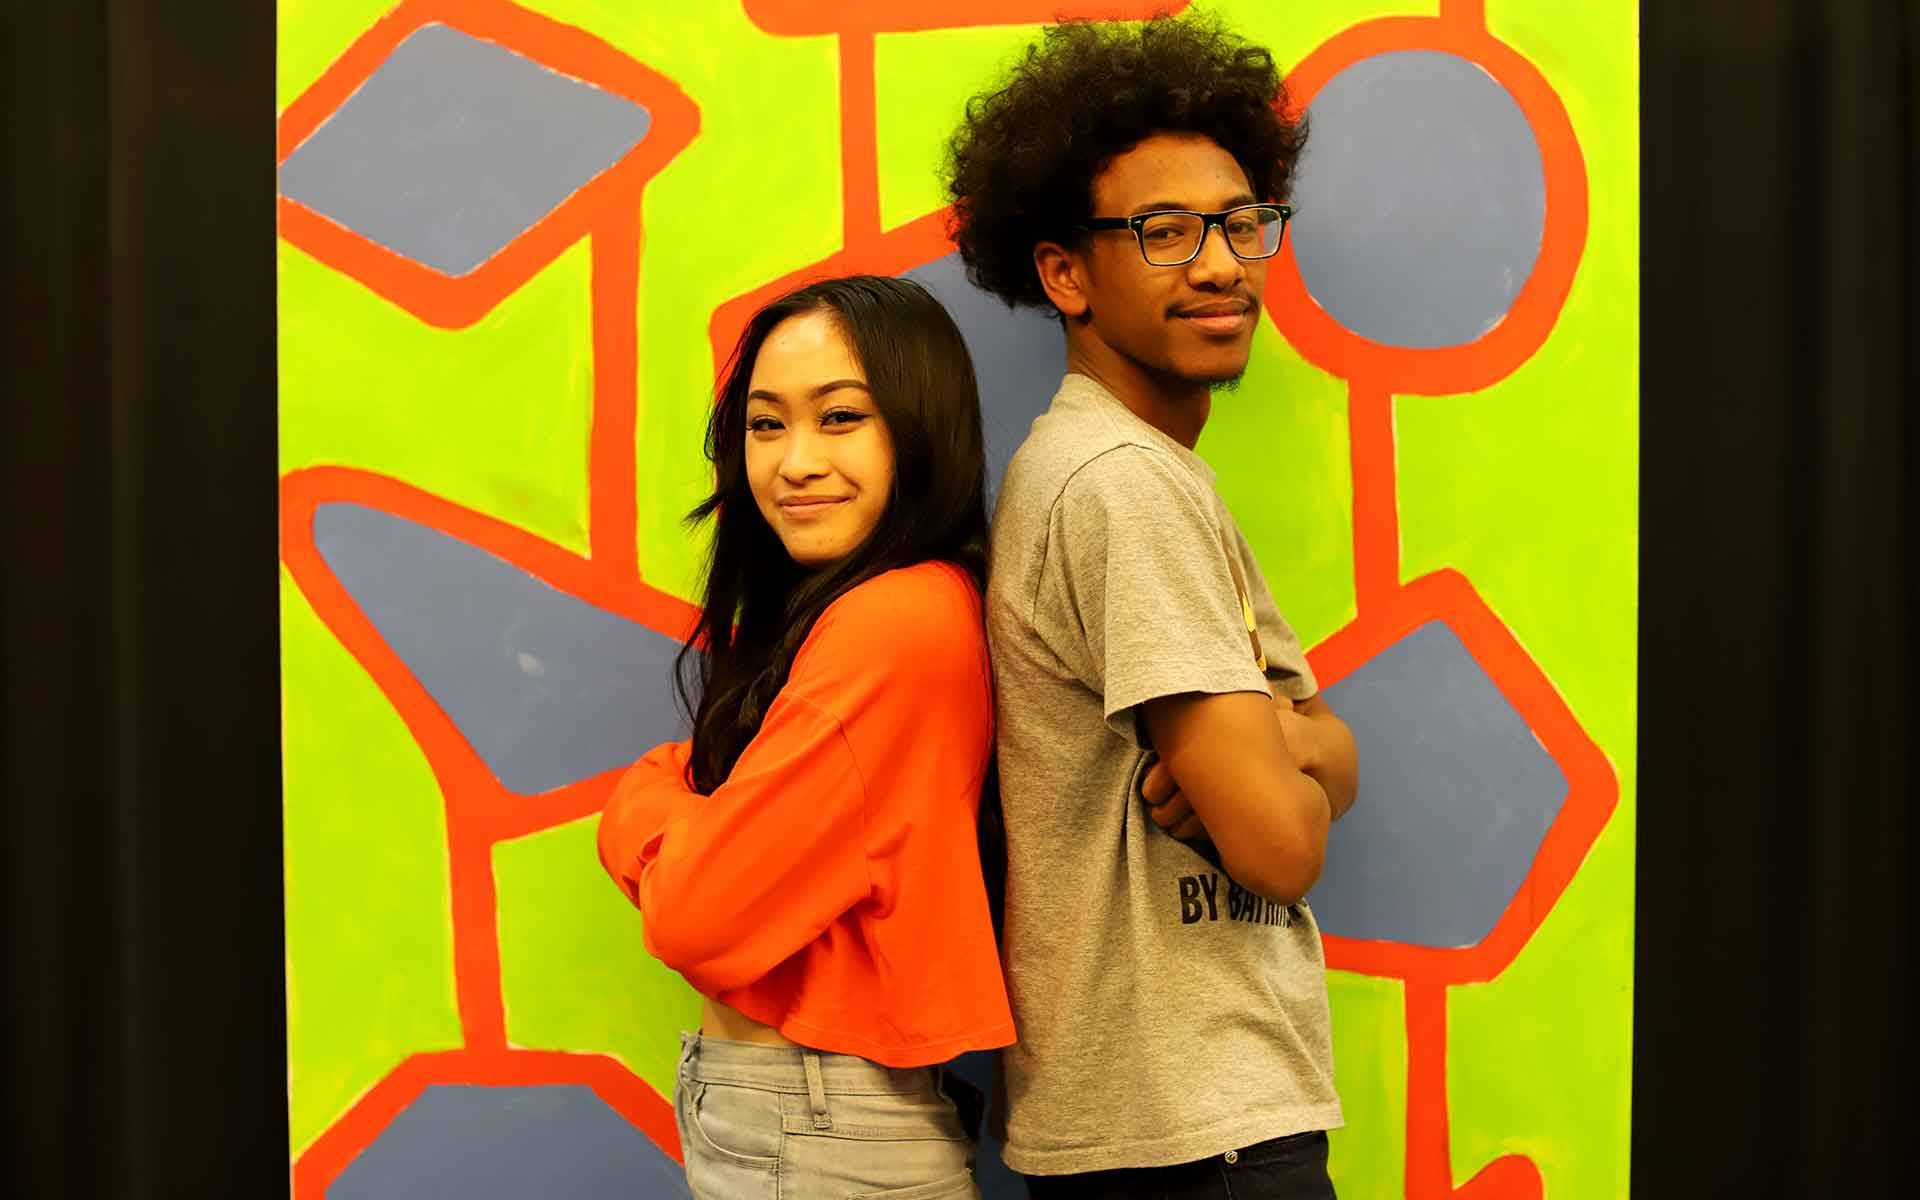 Trinity Chau and Trevahn Srey (L–R) are the two leads in 'Hairspray' at Oakland High School. The musical is in danger of being canceled due to the teachers' strike. Gabe Meline/KQED